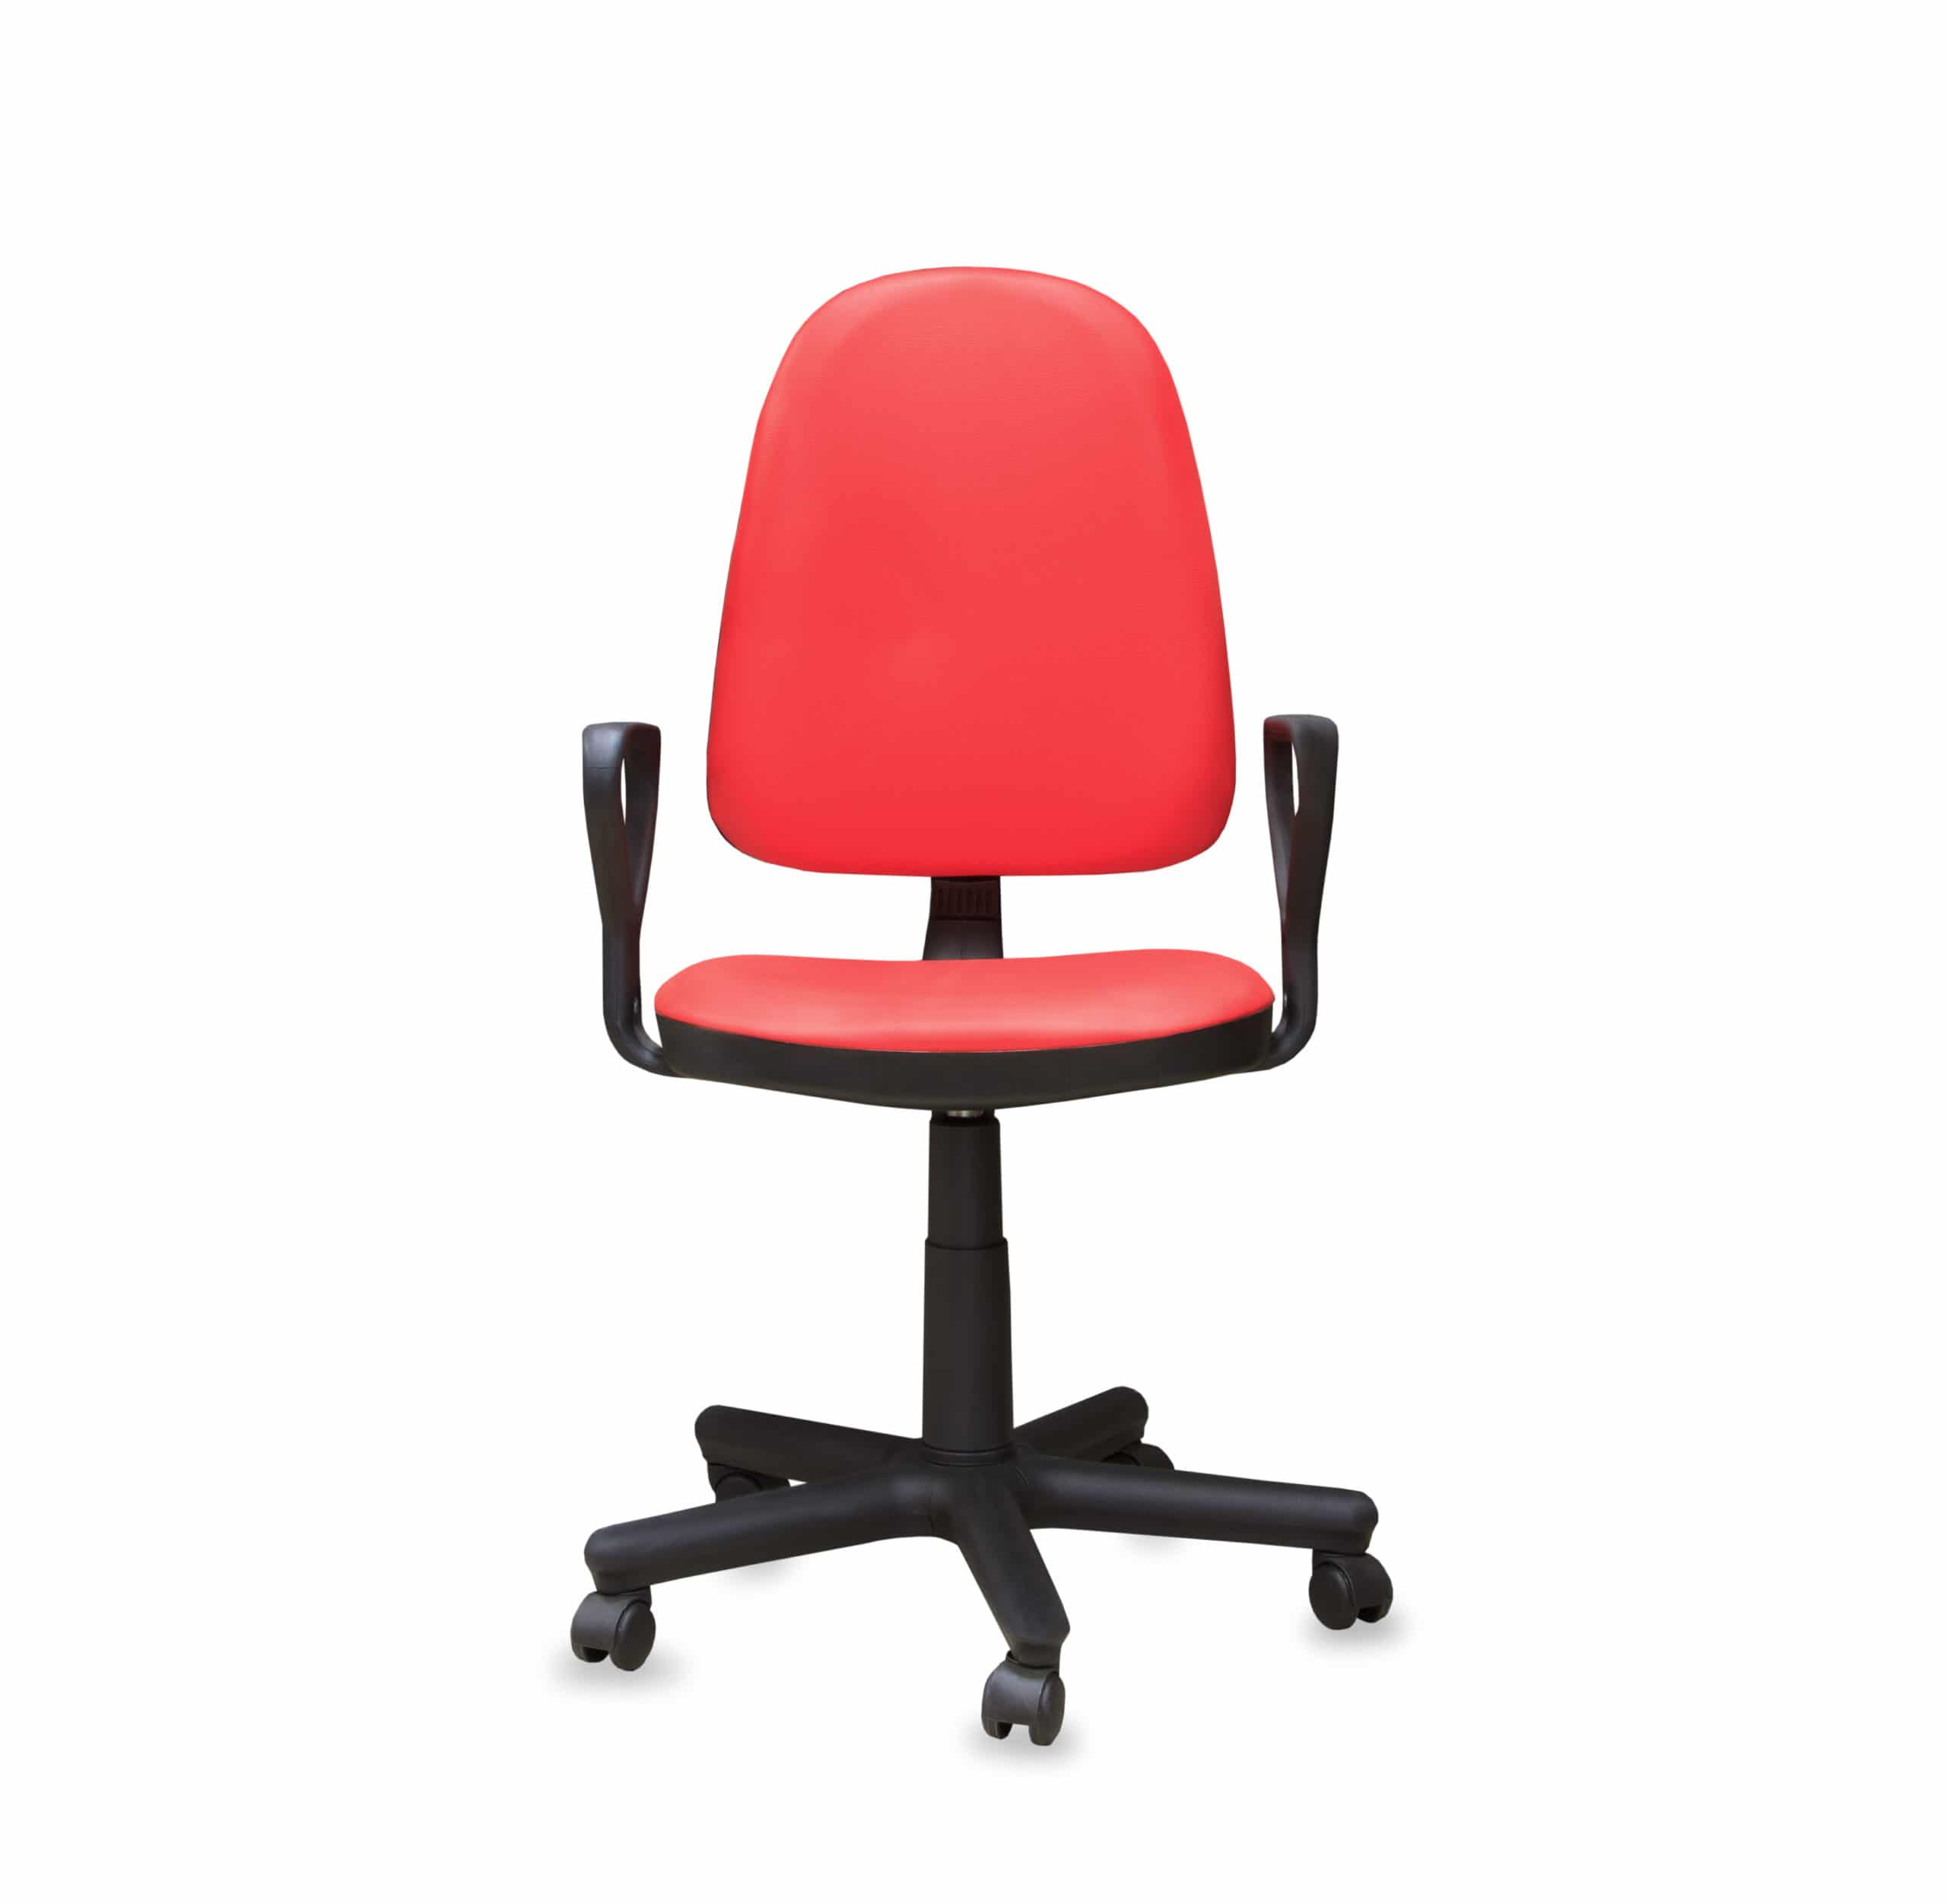 Modern office chair from red leather